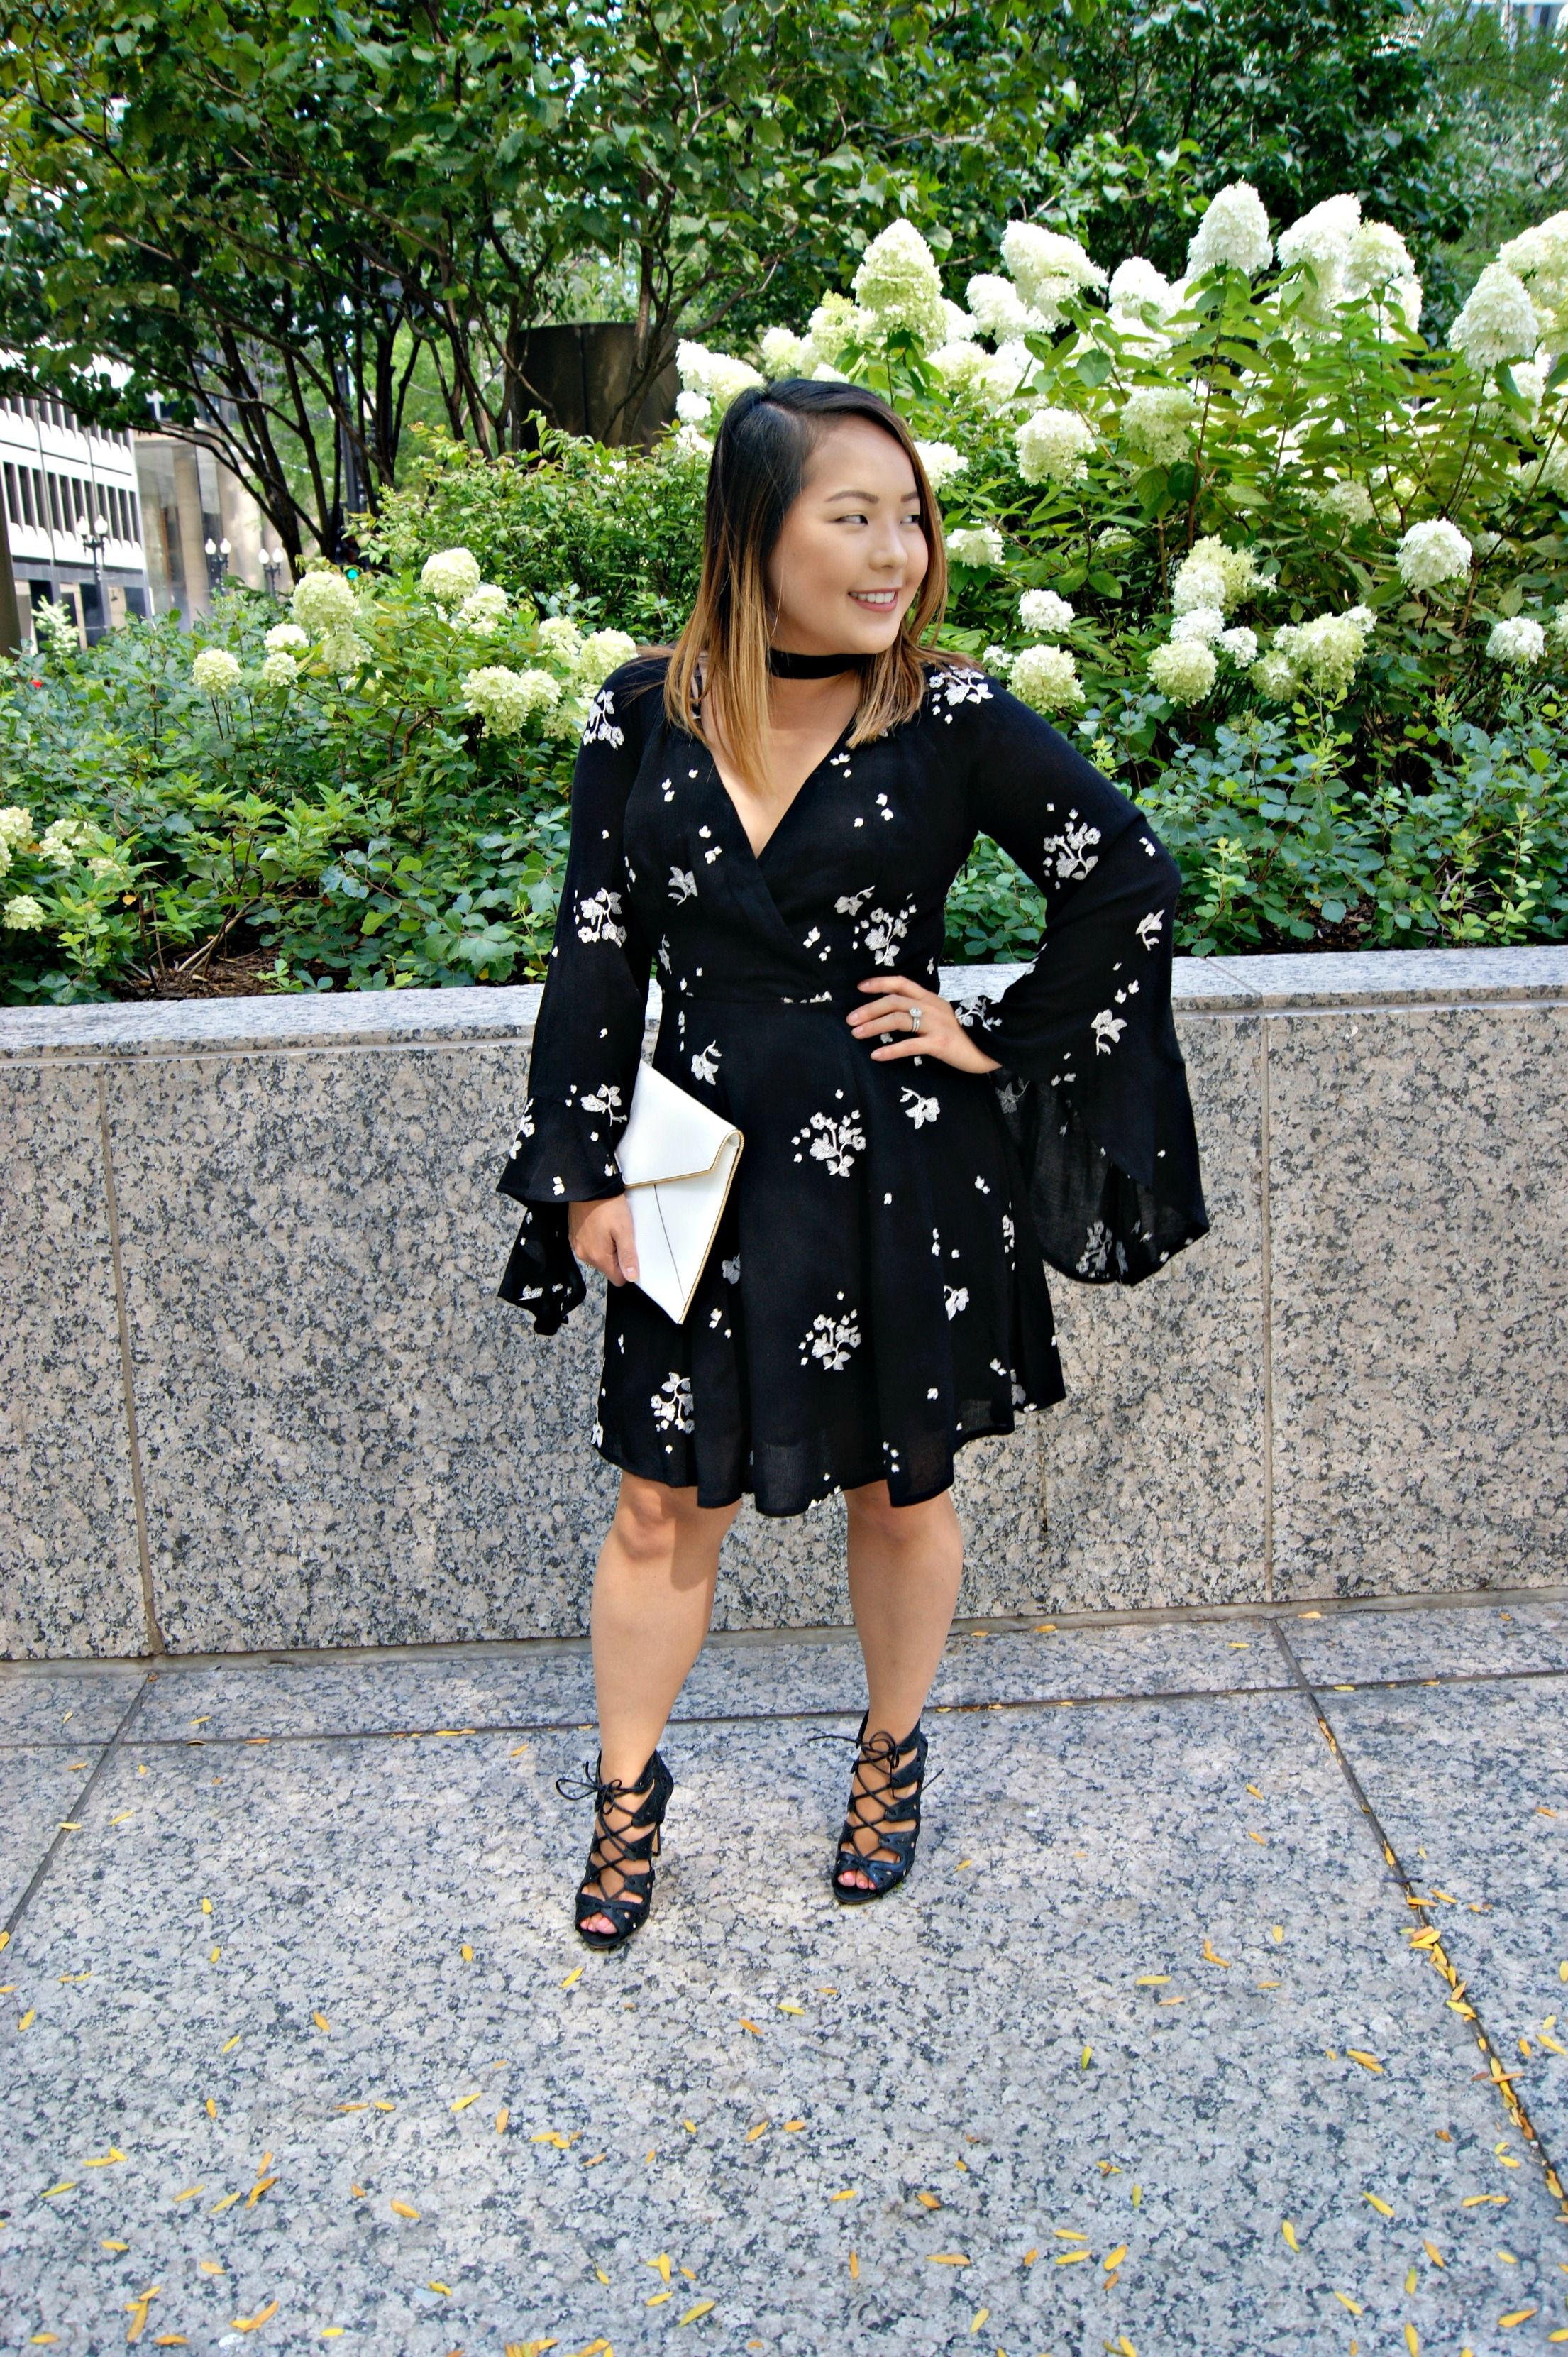 Flowy Florals Free People Black Dress With White Flowers And Bell